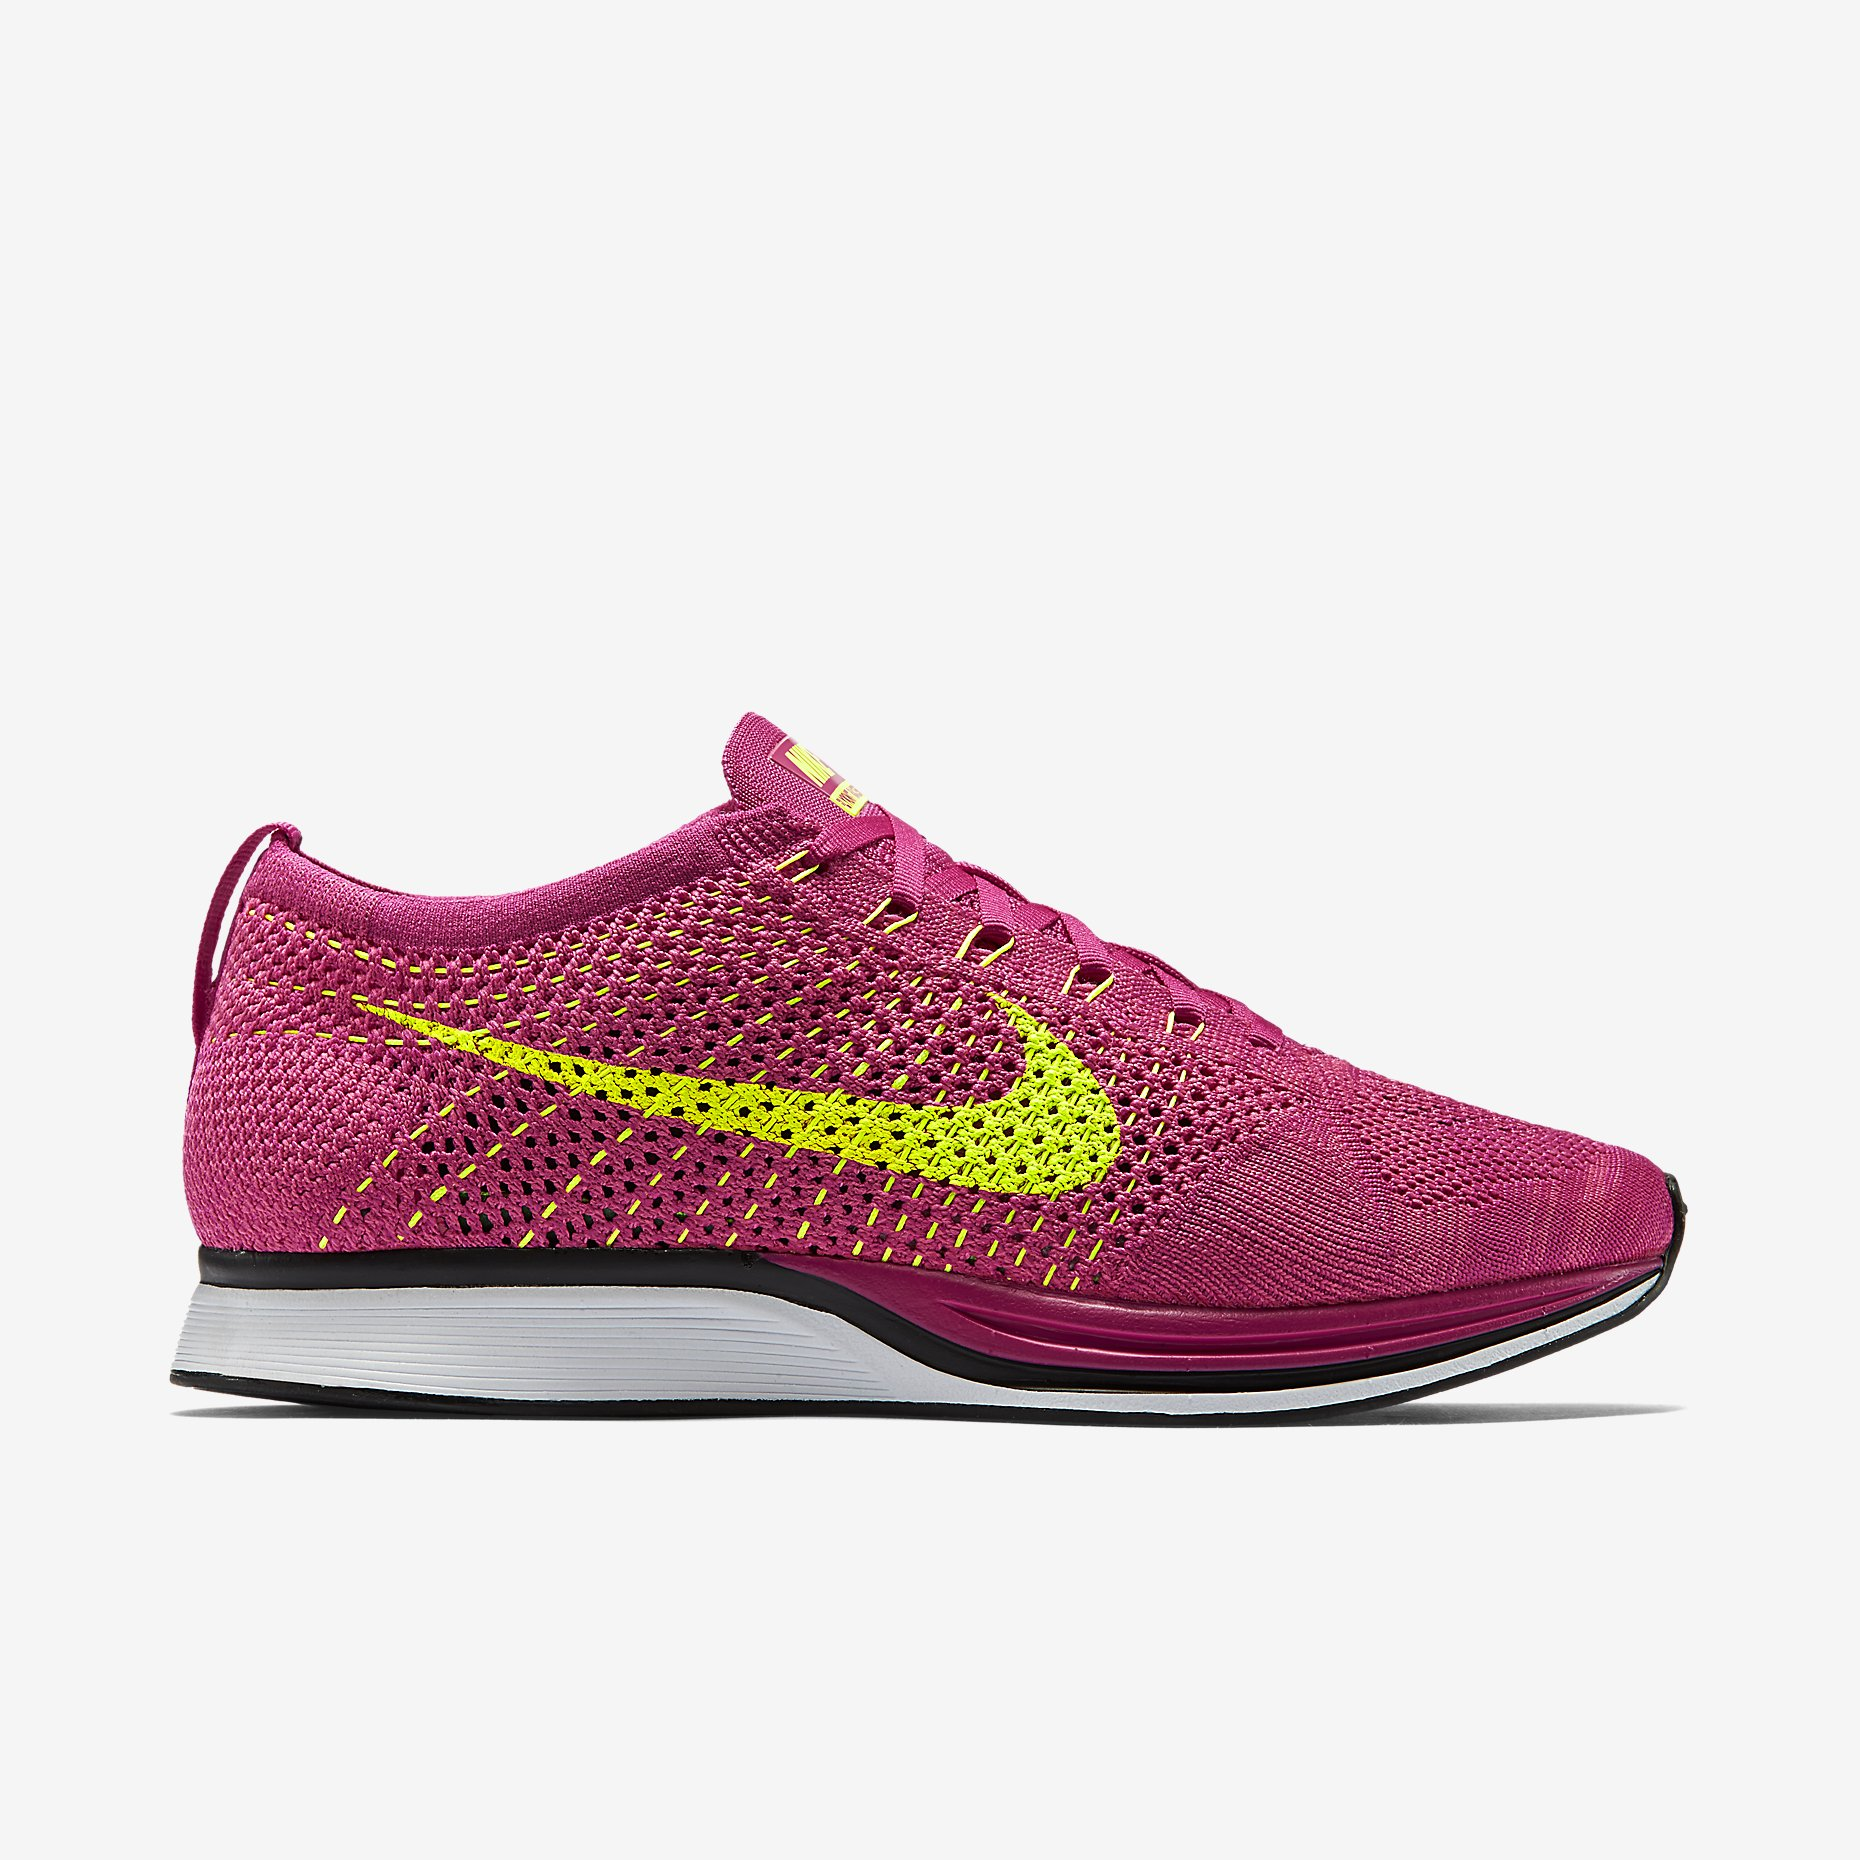 online store 0cd85 c7973 All Nike Flyknit Racer Colorways